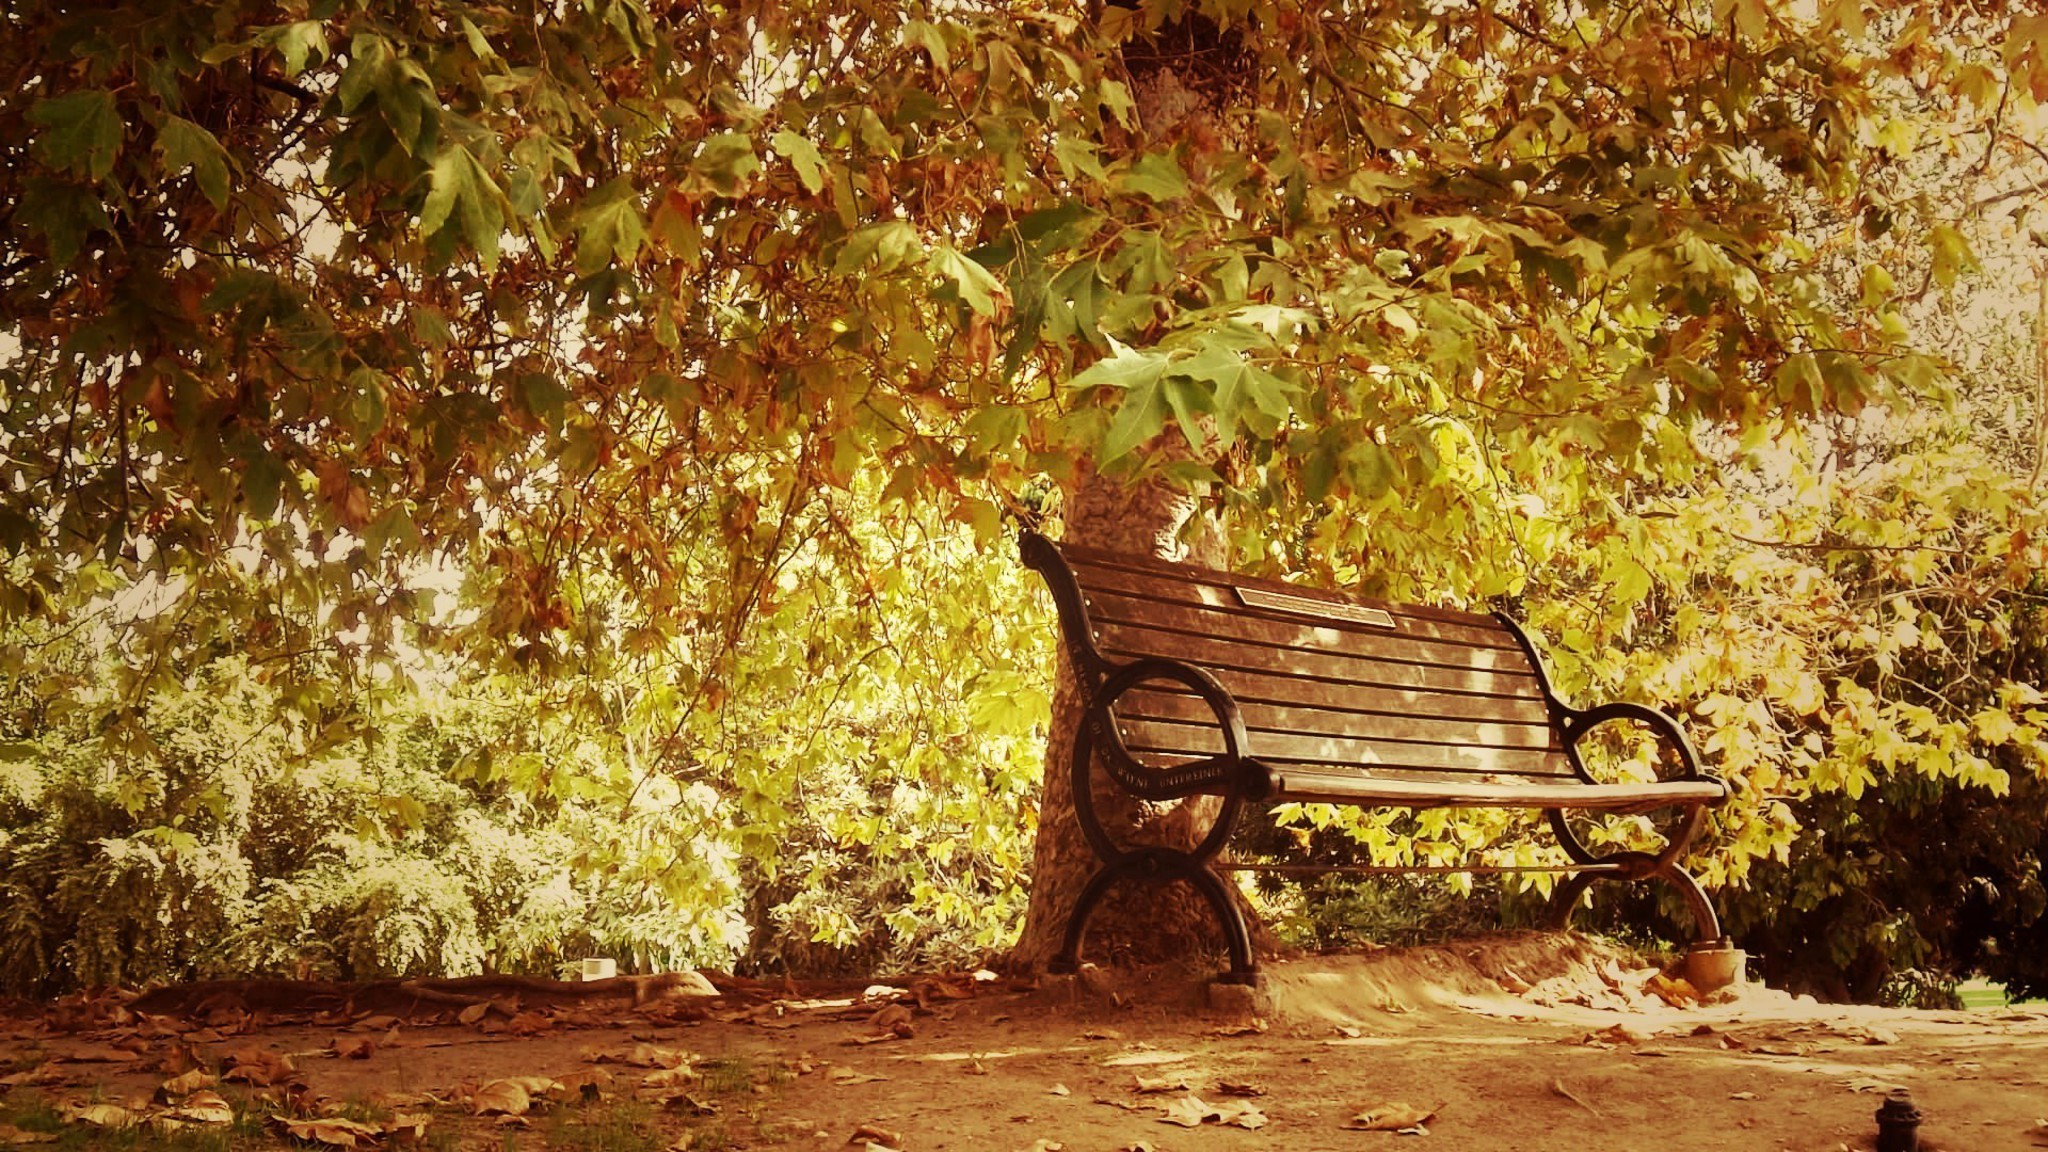 Microsoft Fall Wallpaper Autumn Bench Landscapes Nature Park Wallpaper